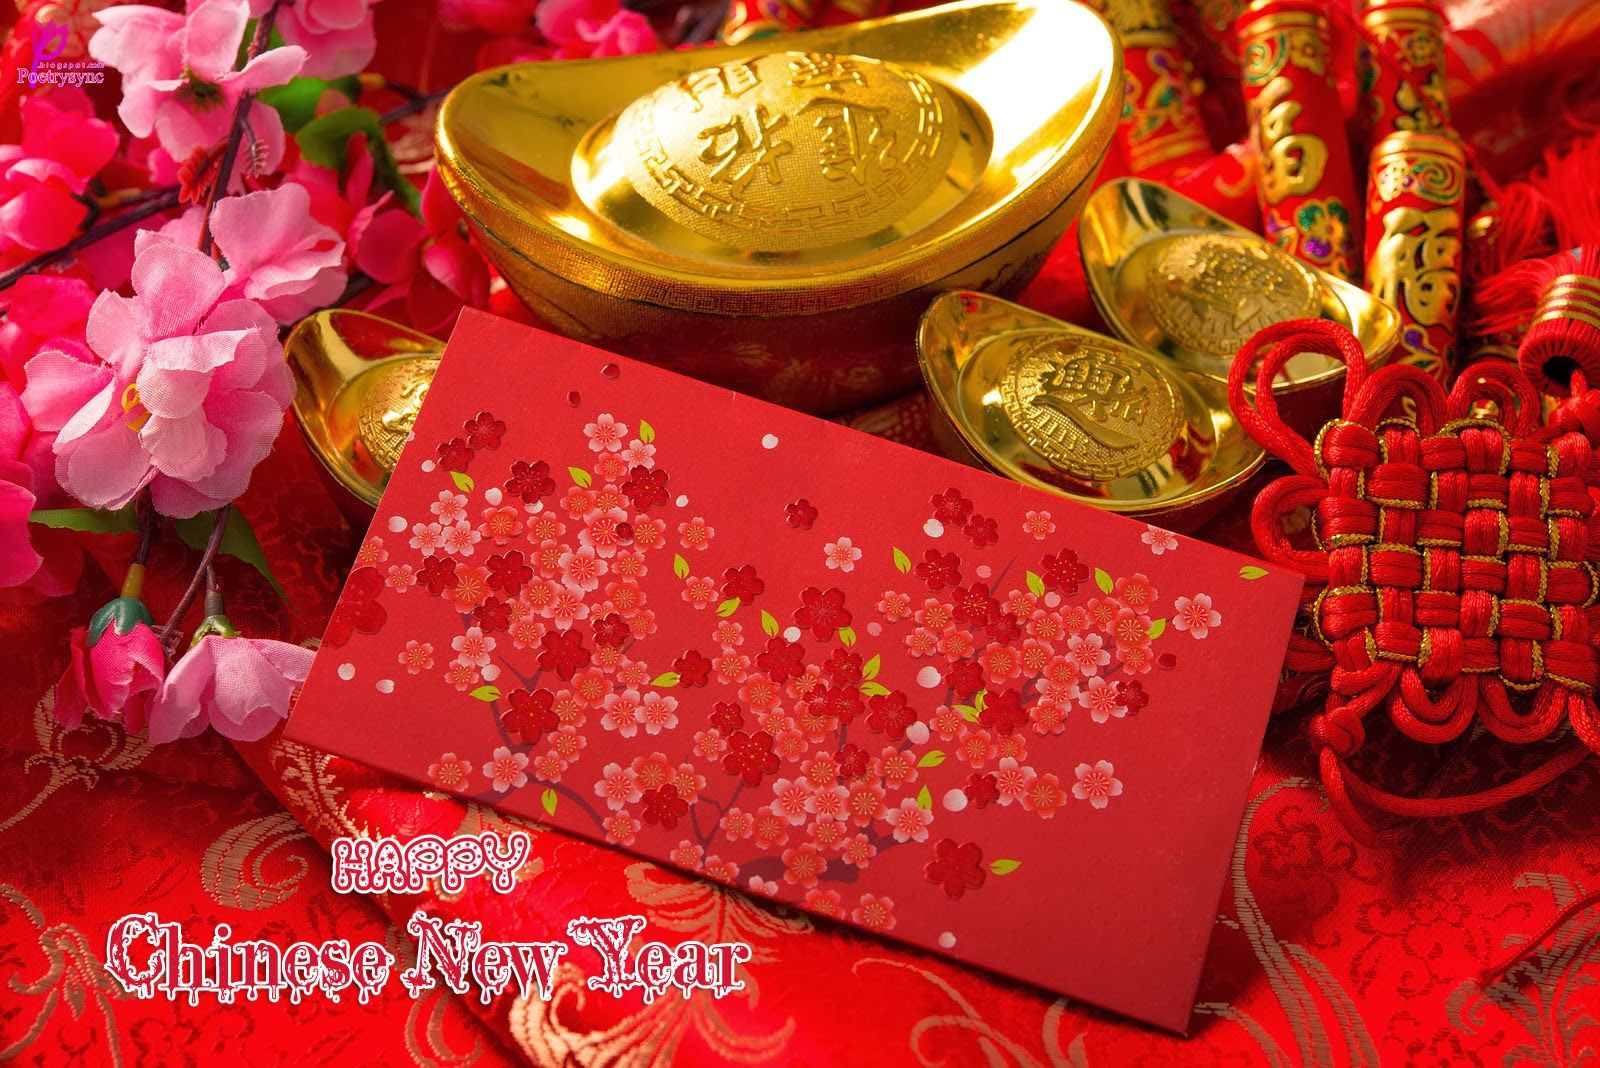 Chinese new year 2014 google search happy chinese new year happy lunar new year 2014 tet new year 2014 happy chinese new year 2014 wishes and greetings image happy tet new year wallpaper pictures kristyandbryce Choice Image